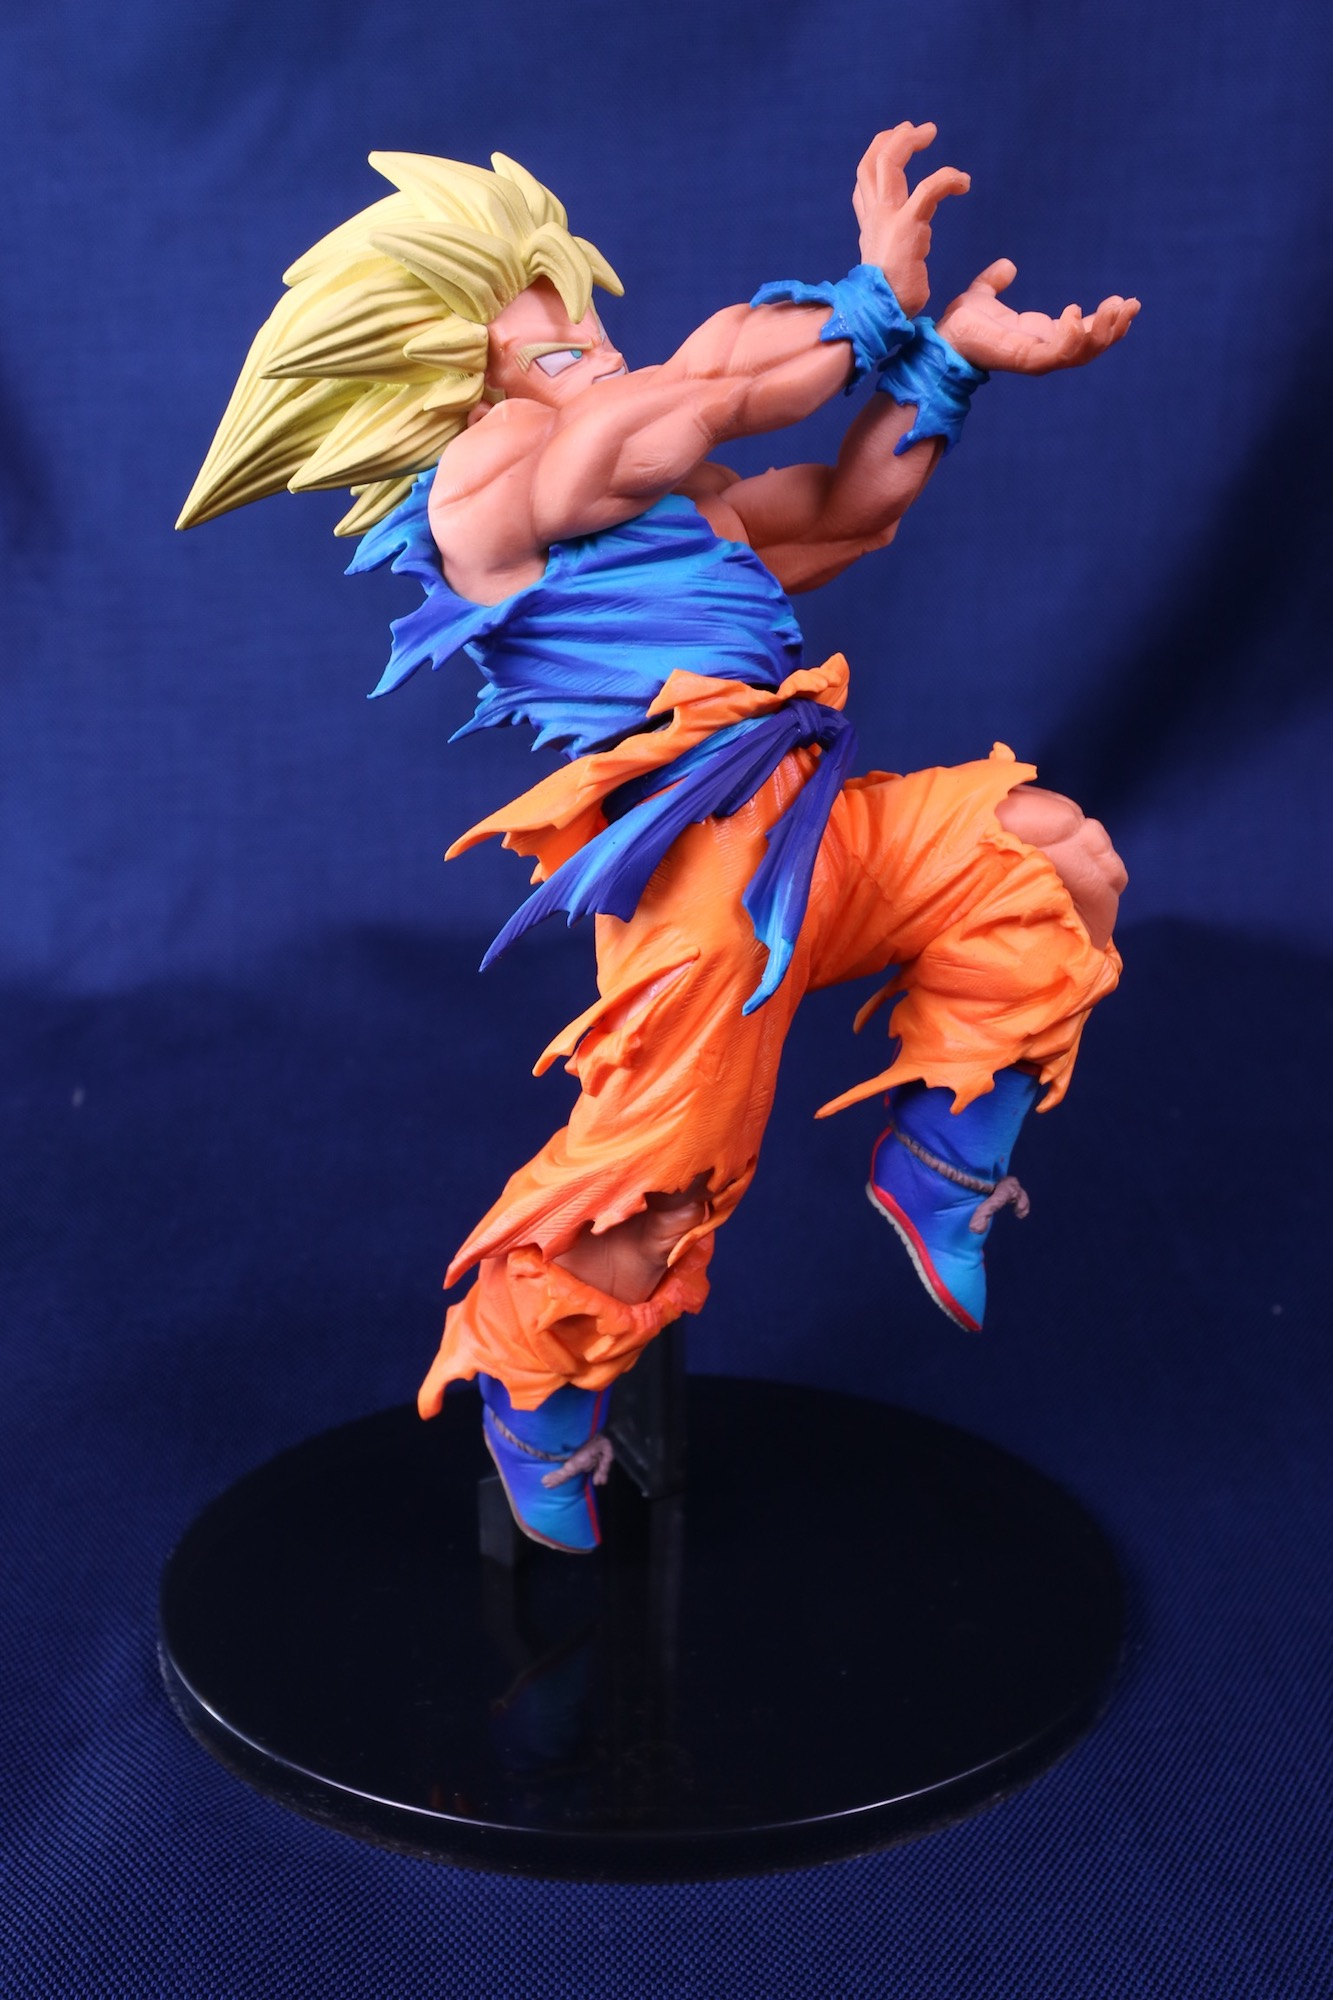 ドラゴンボールZ BANPRESTO WORLD FIGURE COLOSSEUM 造形天下一武道会 其之一 玩偶写真